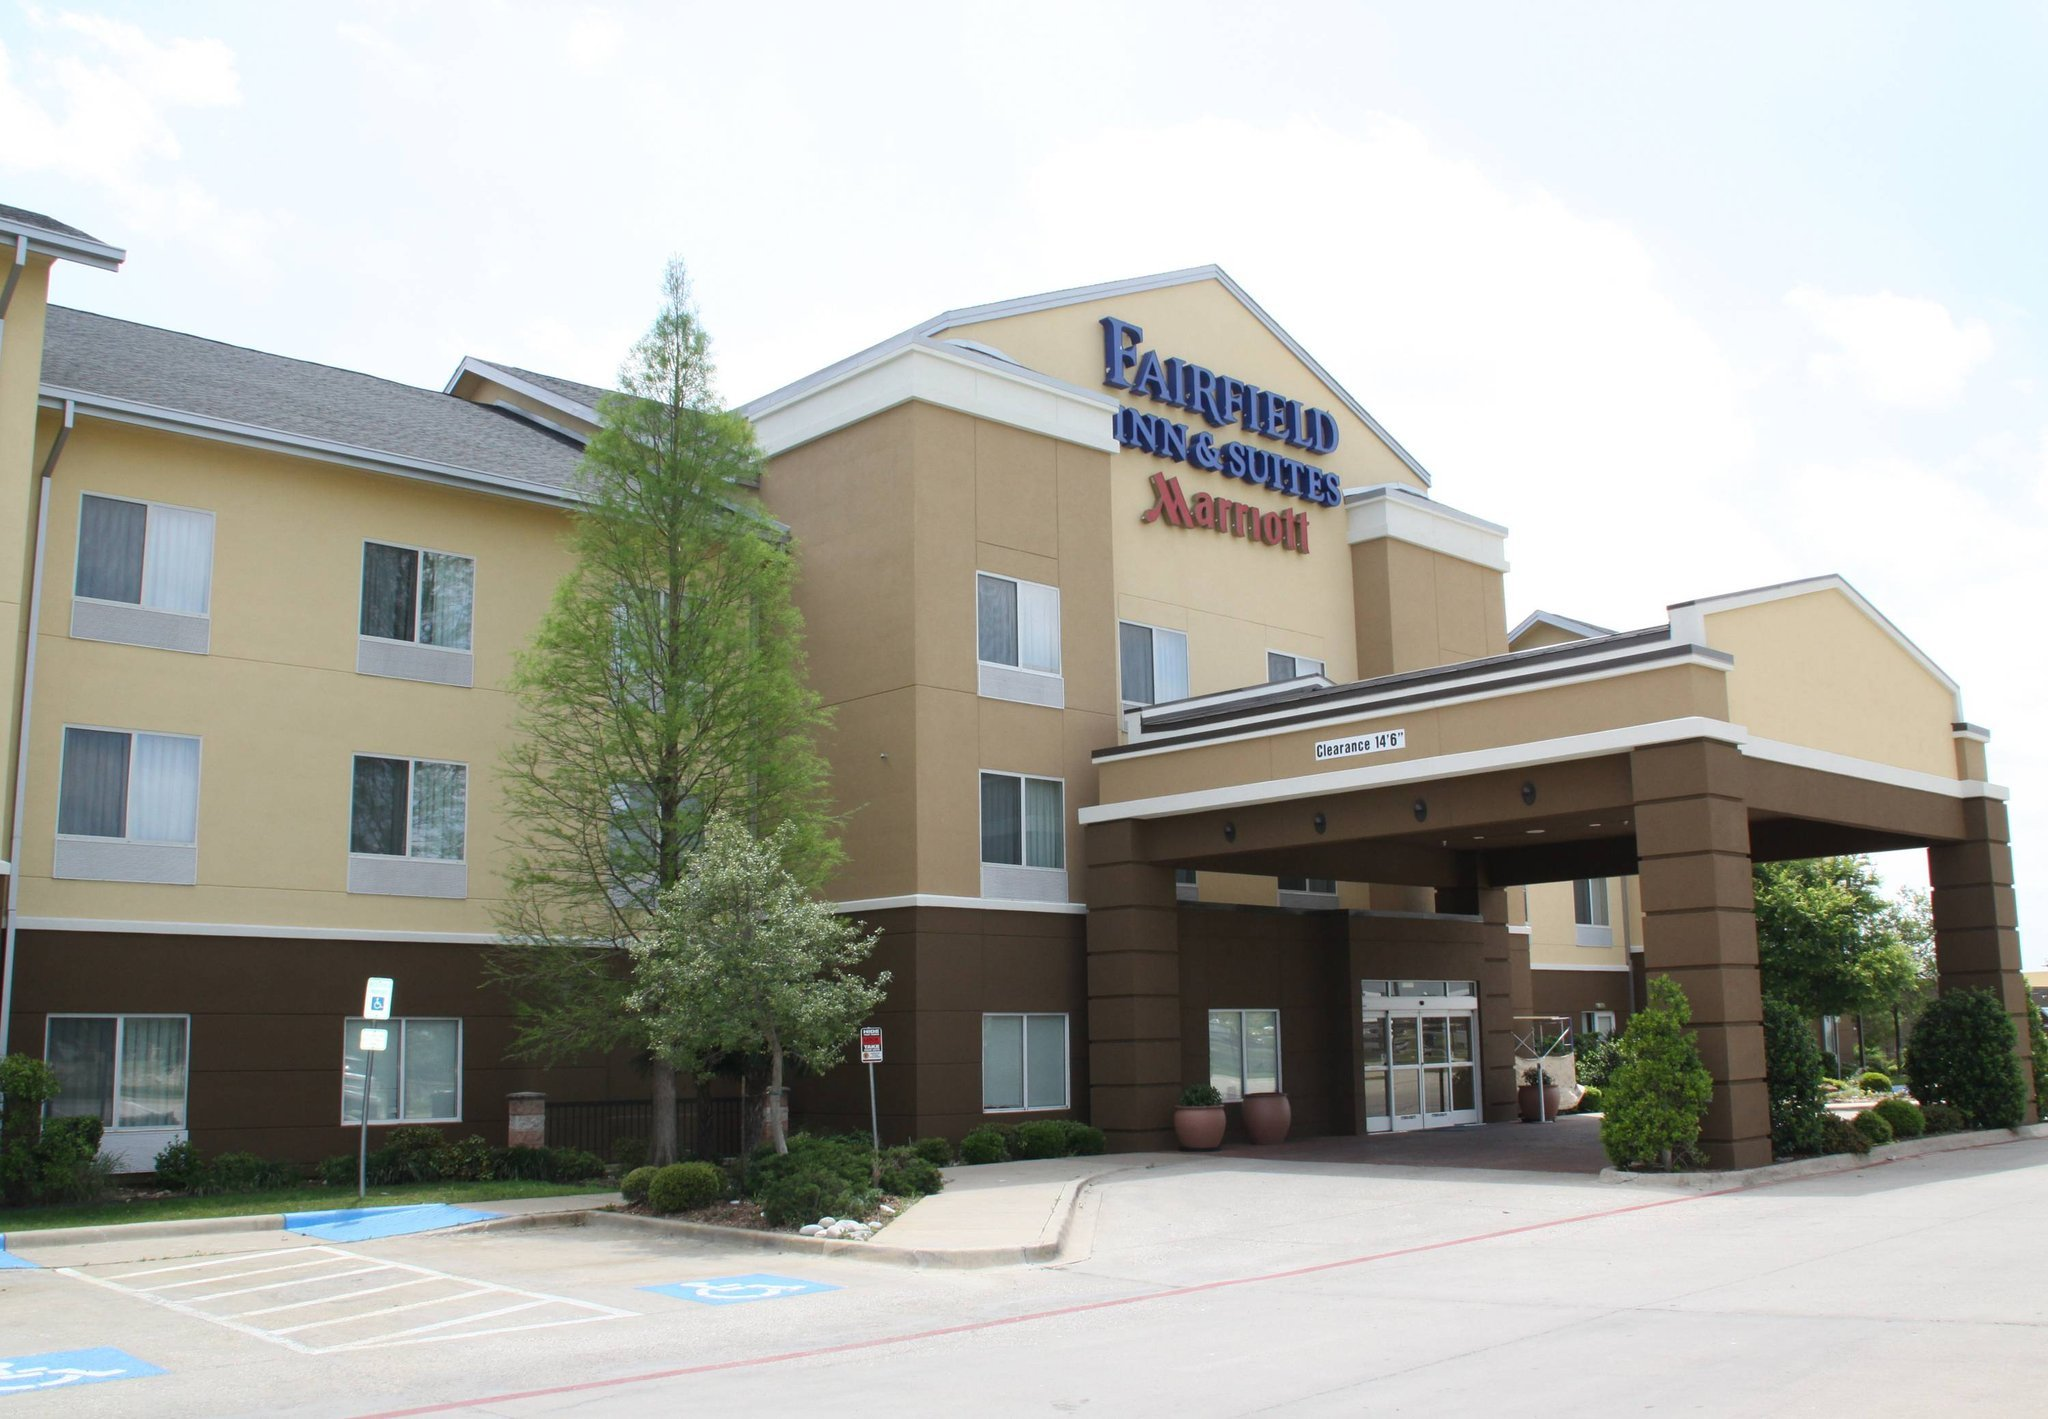 Fairfield Inn & Suites Denton